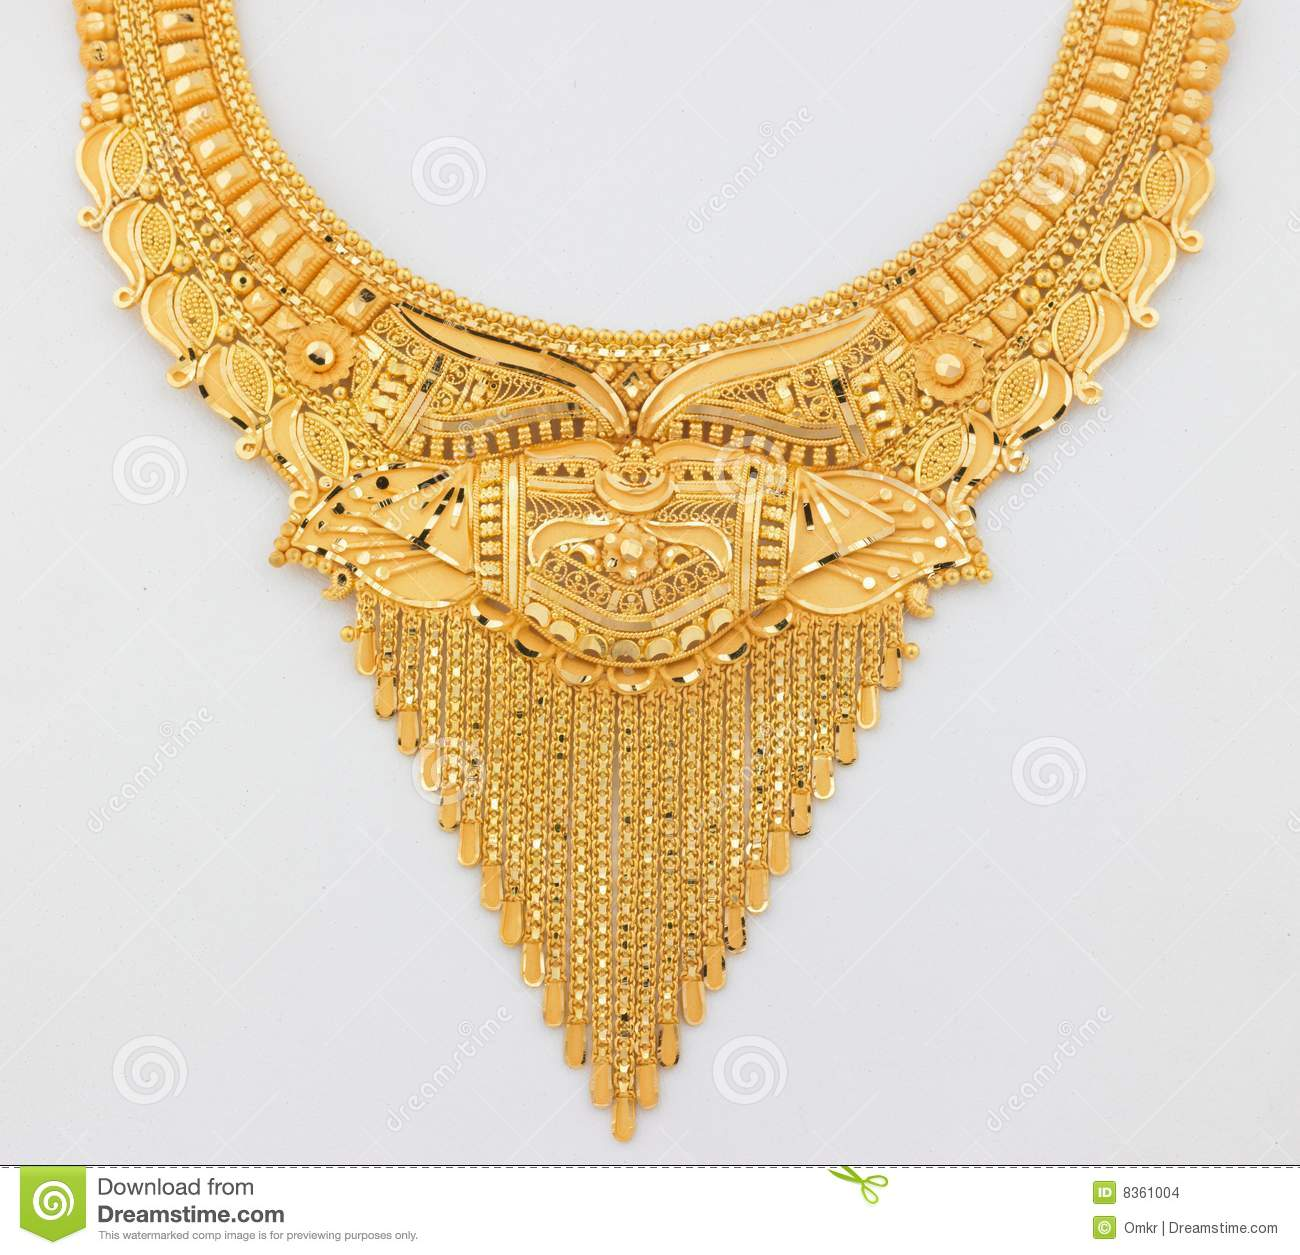 Beautiful gold necklace stock photo. Image of handmade - 8361004